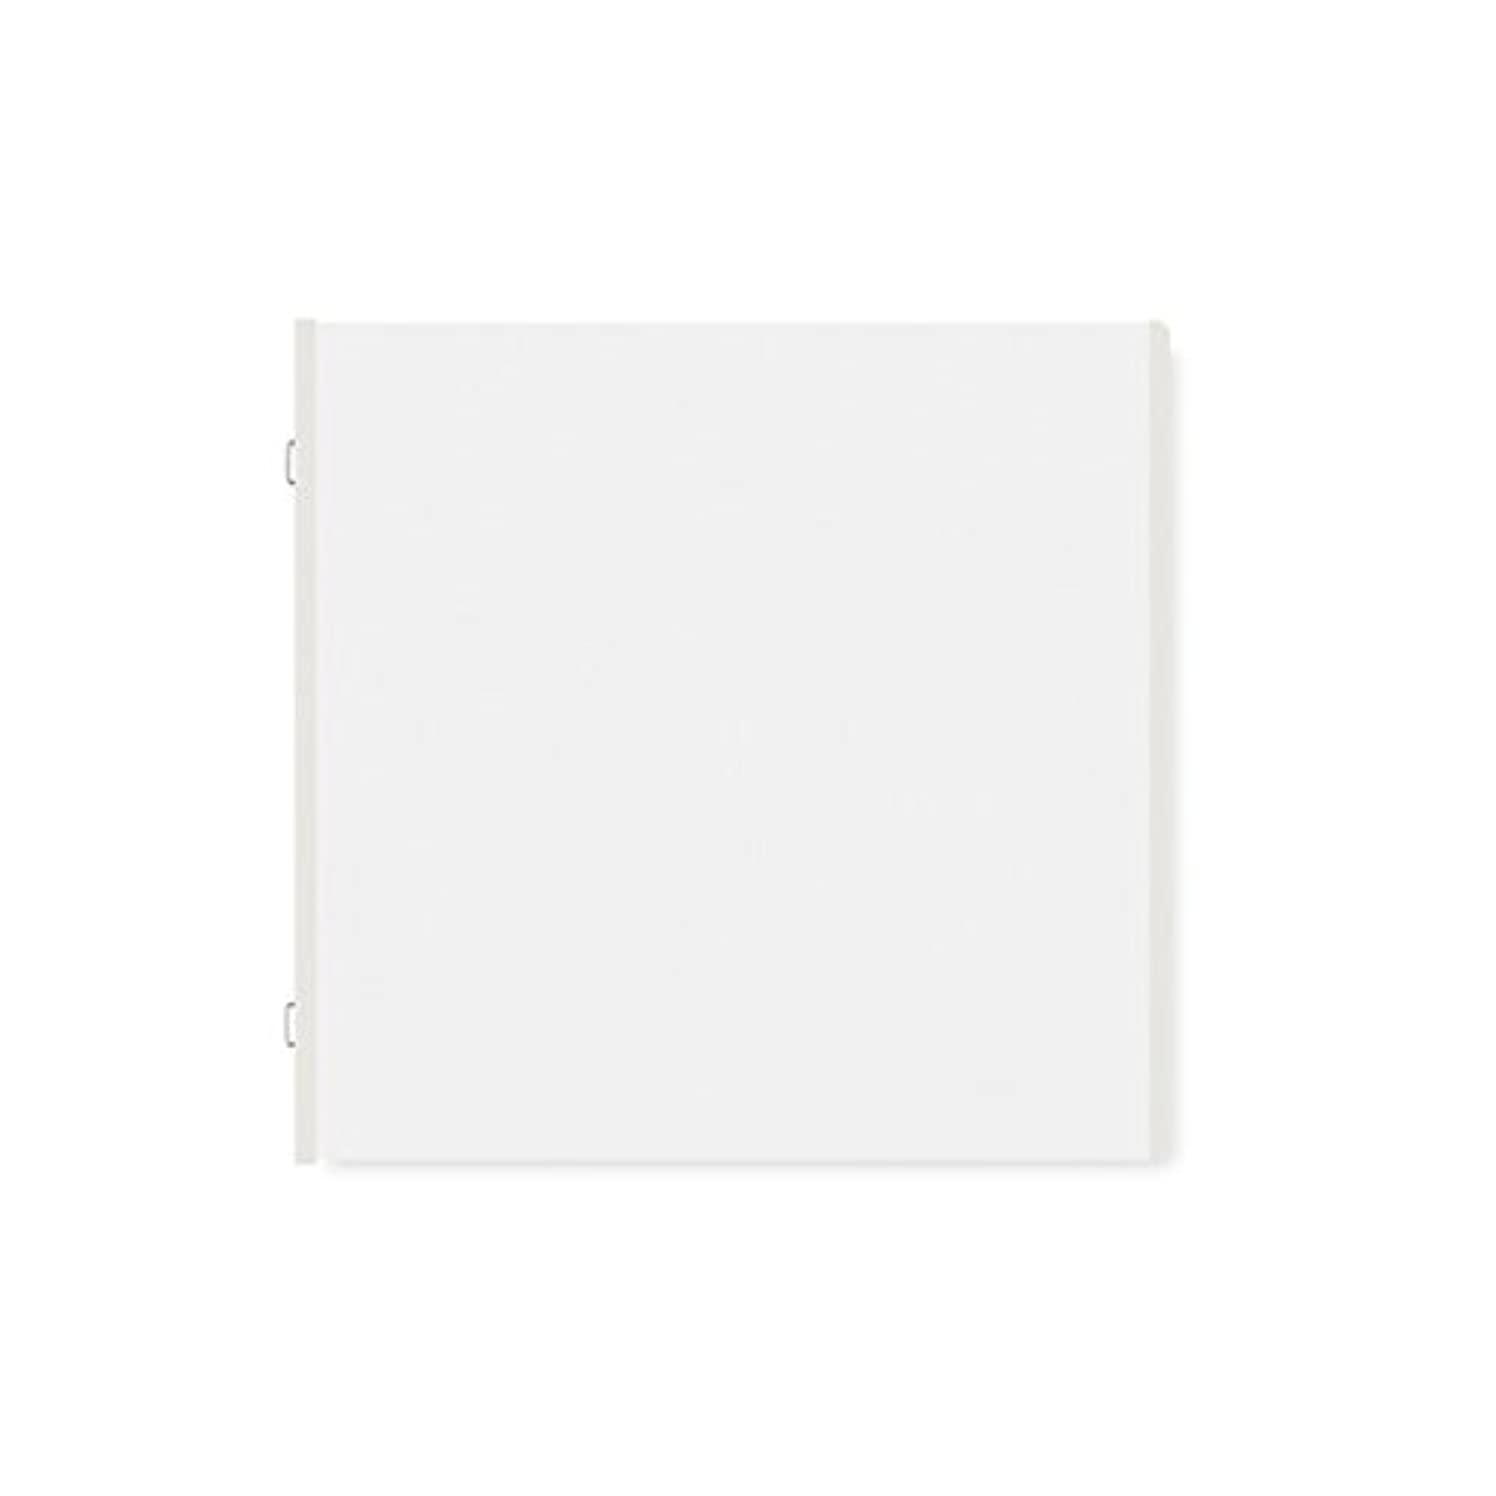 White 8x8 Pages with Protectors by Creative Memories